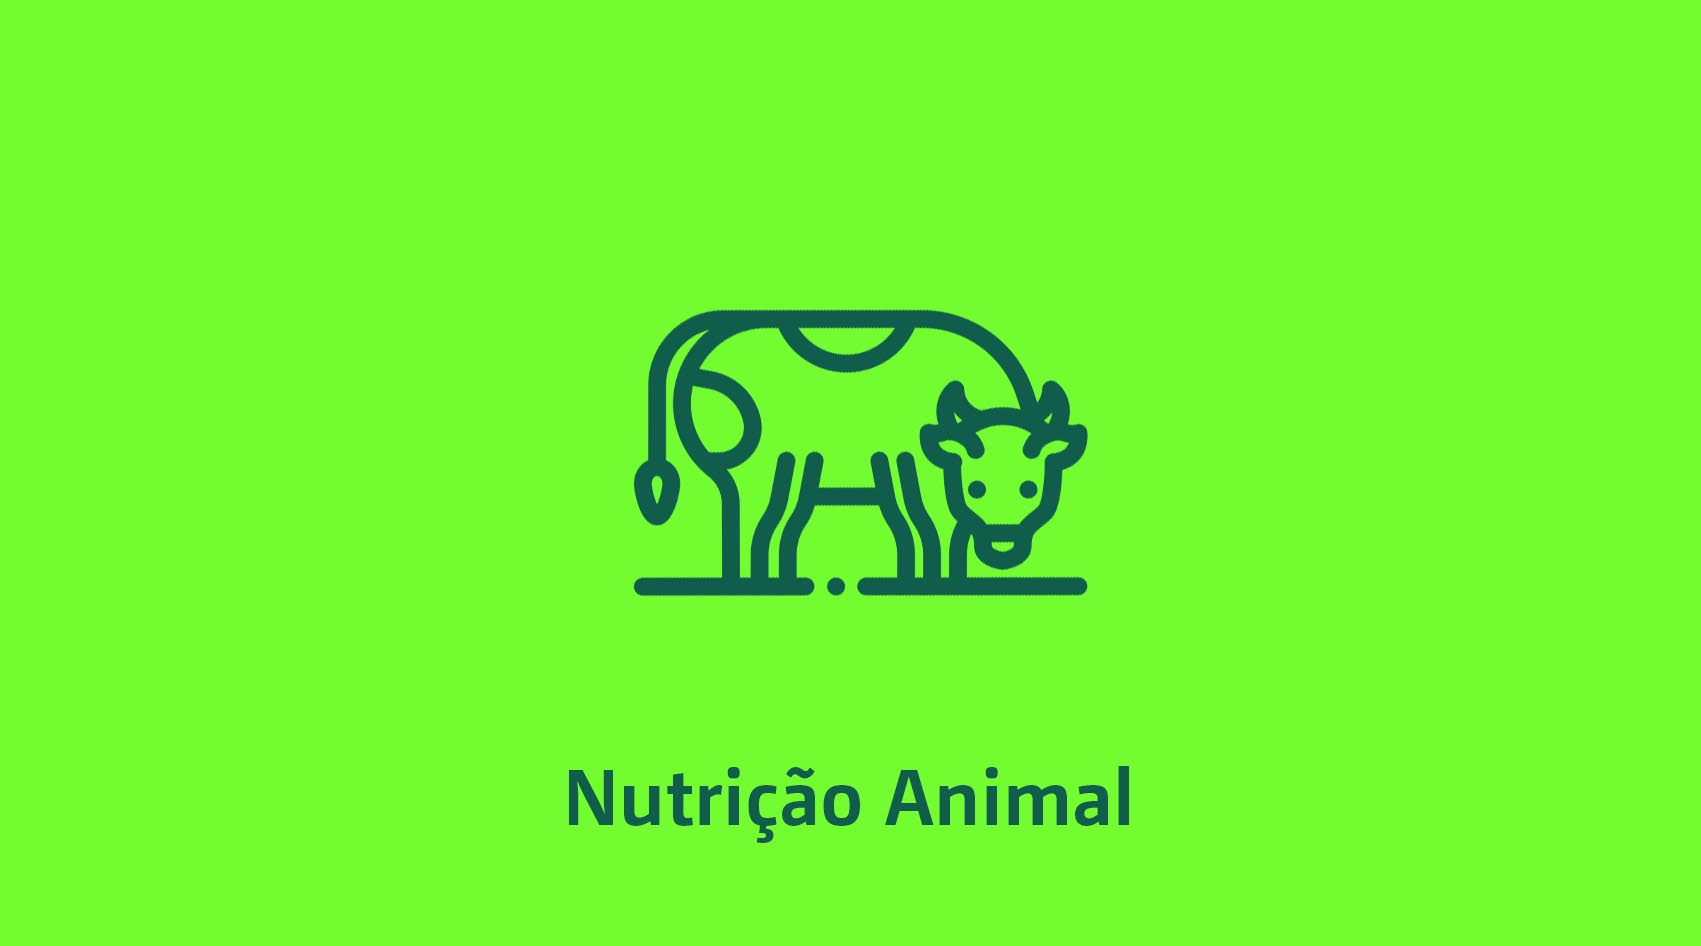 fiabesa-industria-nutricao-animal.jpg